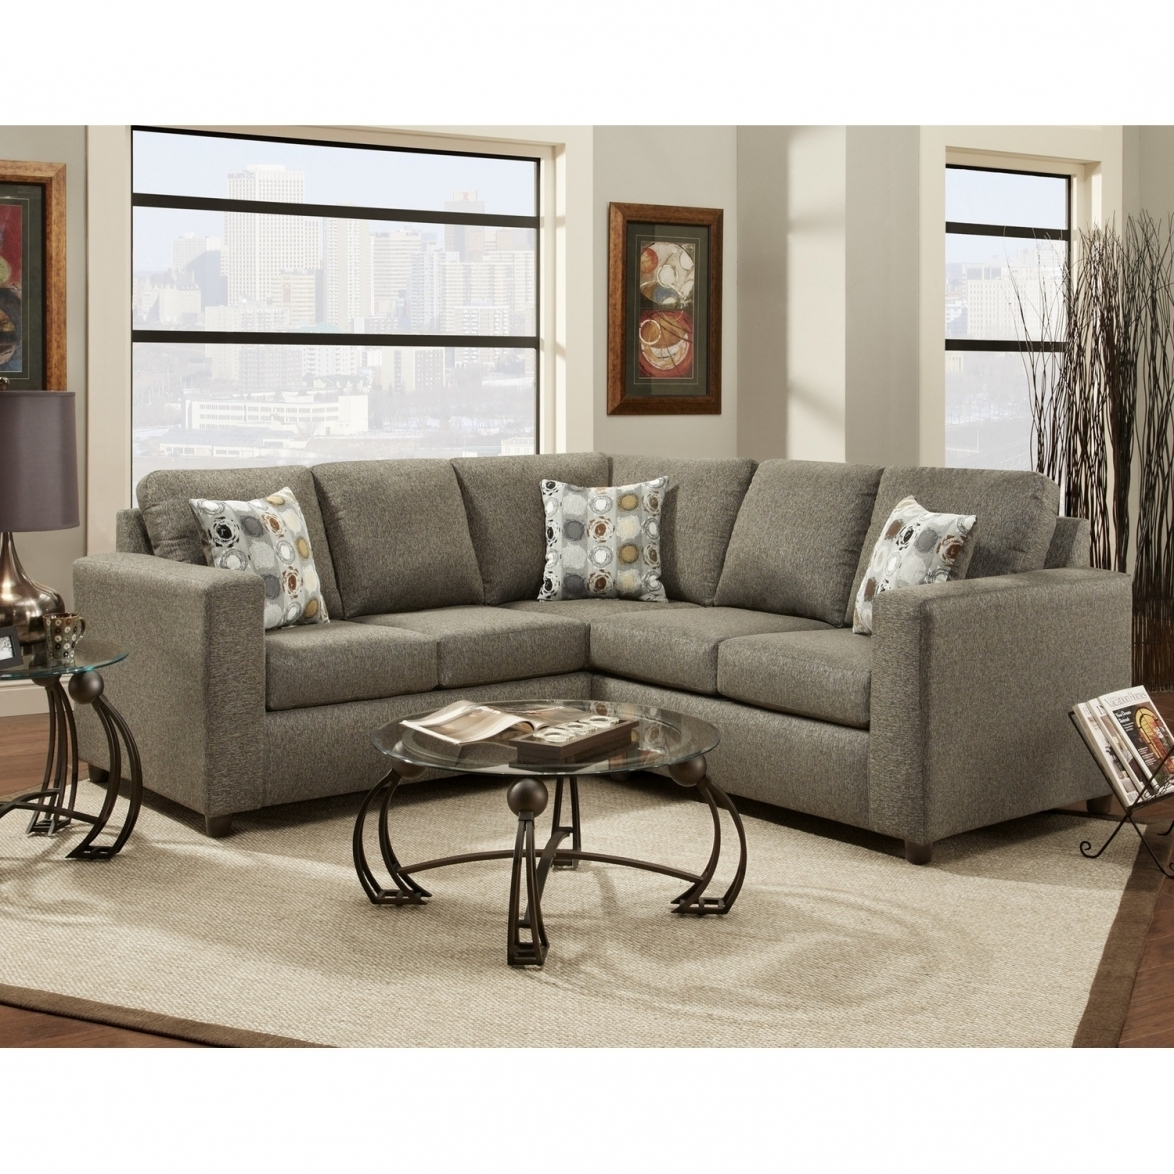 Best And Newest Jacksonville Florida Sectional Sofas Within Photos Sectional Sofas Jacksonville Fl – Buildsimplehome (View 1 of 15)